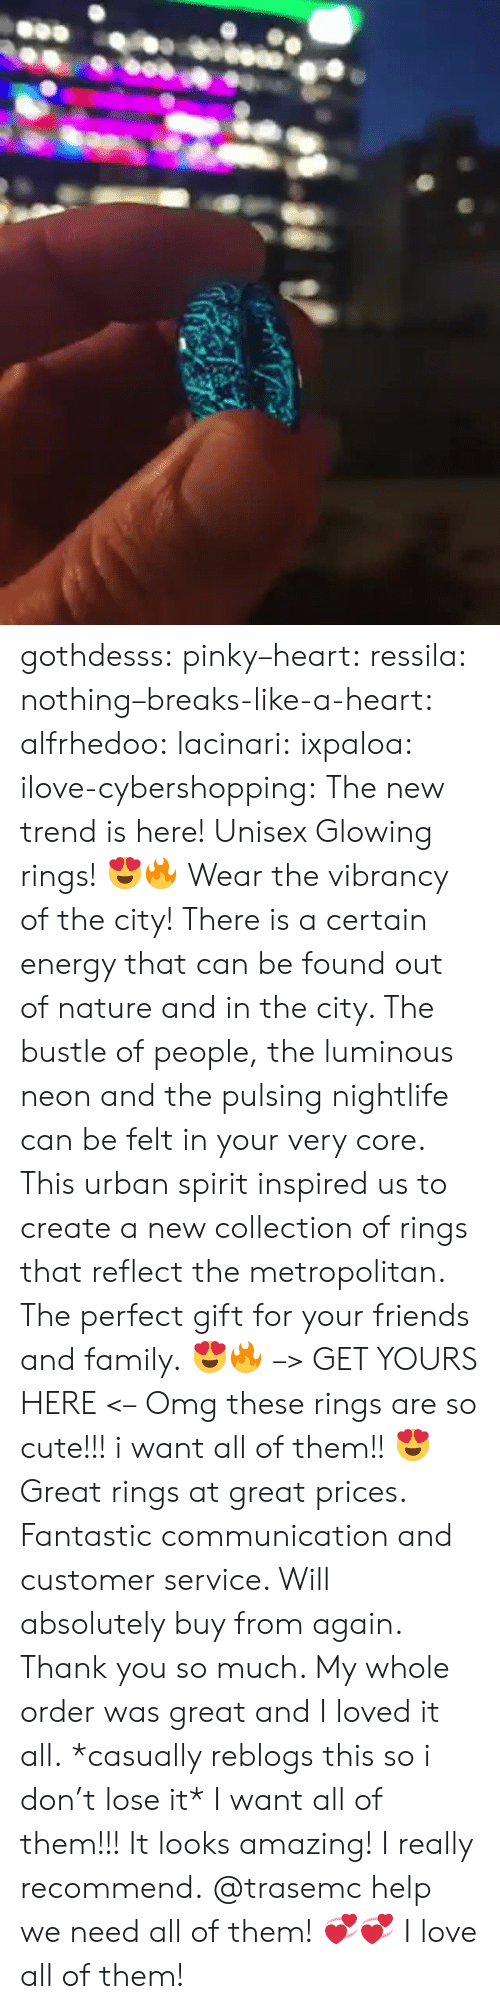 Cute, Energy, and Family: gothdesss:  pinky–heart: ressila:  nothing–breaks-like-a-heart:  alfrhedoo:  lacinari:  ixpaloa:  ilove-cybershopping:  The new trend is here! Unisex Glowing rings! 😍🔥 Wear the vibrancy of the city! There is a certain energy that can be found out of nature and in the city. The bustle of people, the luminous neon and the pulsing nightlife can be felt in your very core. This urban spirit inspired us to create a new collection of rings that reflect the metropolitan. The perfect gift for your friends and family.😍🔥 –> GET YOURS HERE <–  Omg these rings are so cute!!! i want all of them!!😍  Great rings at great prices. Fantastic communication and customer service. Will absolutely buy from again. Thank you so much. My whole order was great and I loved it all.  *casually reblogs this so i don't lose it*  I want all of them!!!  It looks amazing! I really recommend.  @trasemc help we need all of them!💞💞  I love all of them!